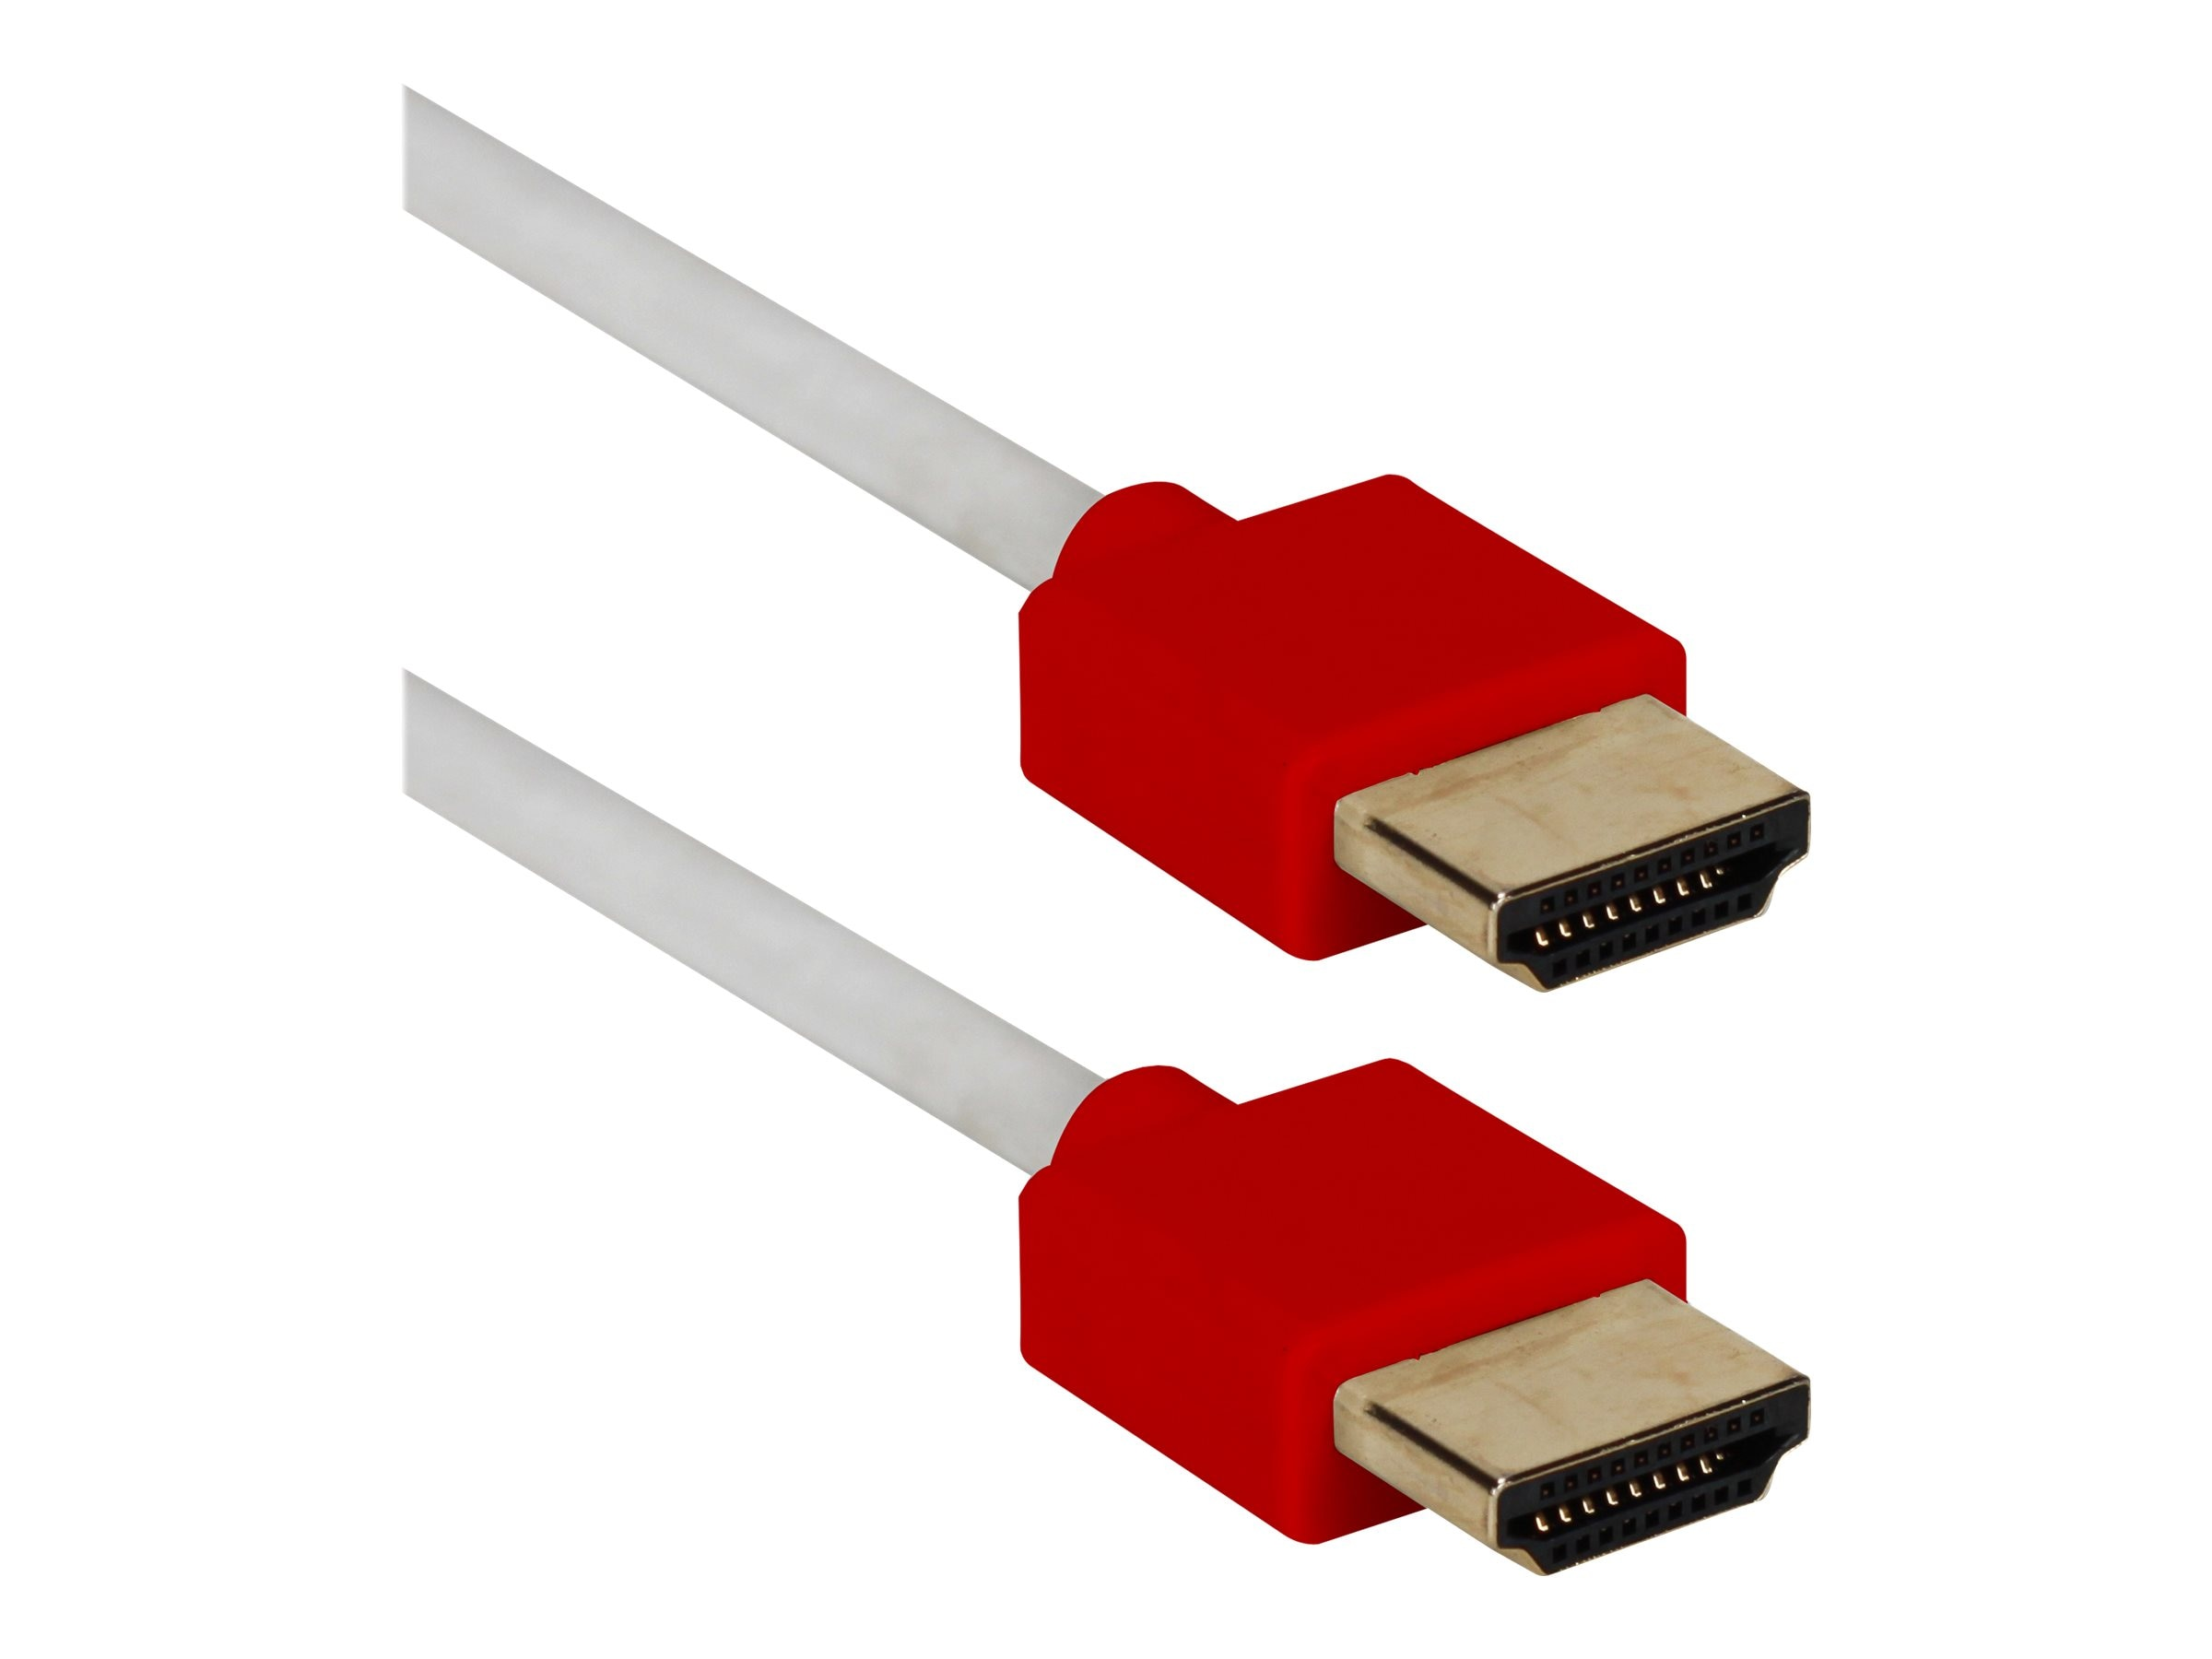 QVS High Speed UltraHD 4K HDMI Thin Flexible Cable with Ethernet, White Red, 10ft